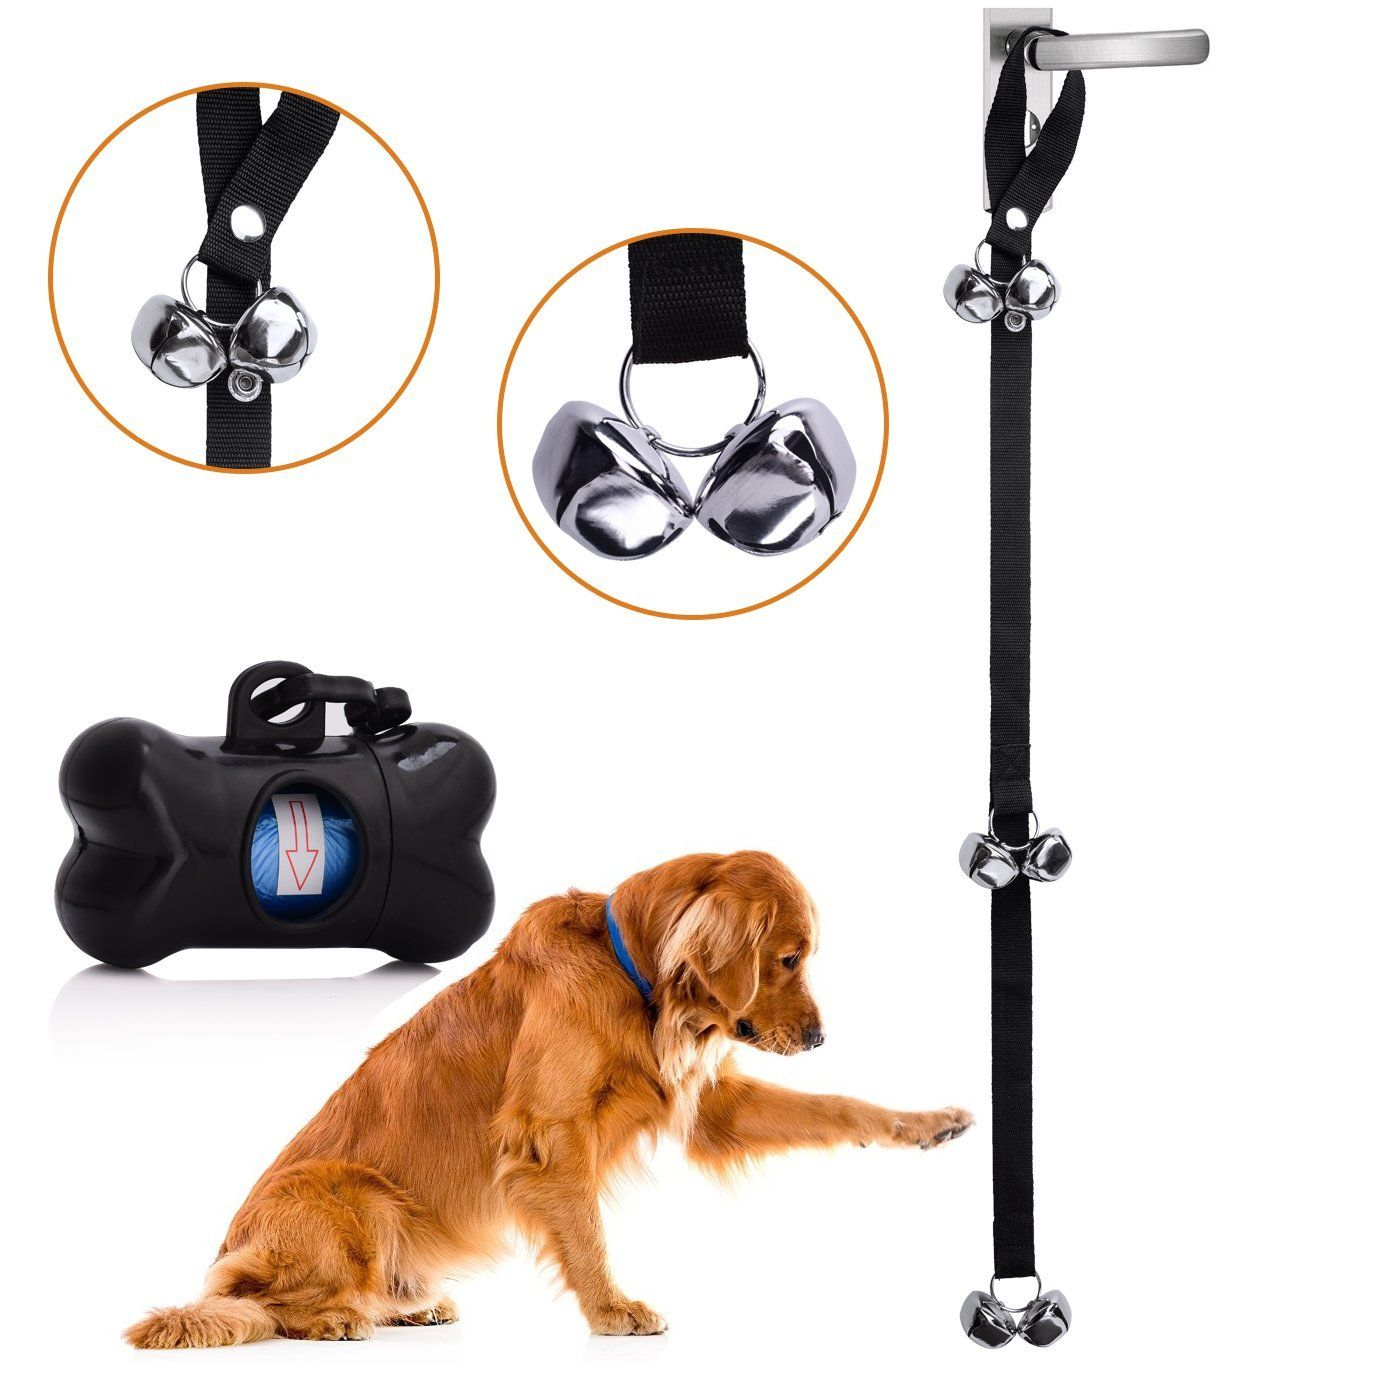 Me Fan Dog Doorbells For Dog Training And Housebreaking Potty